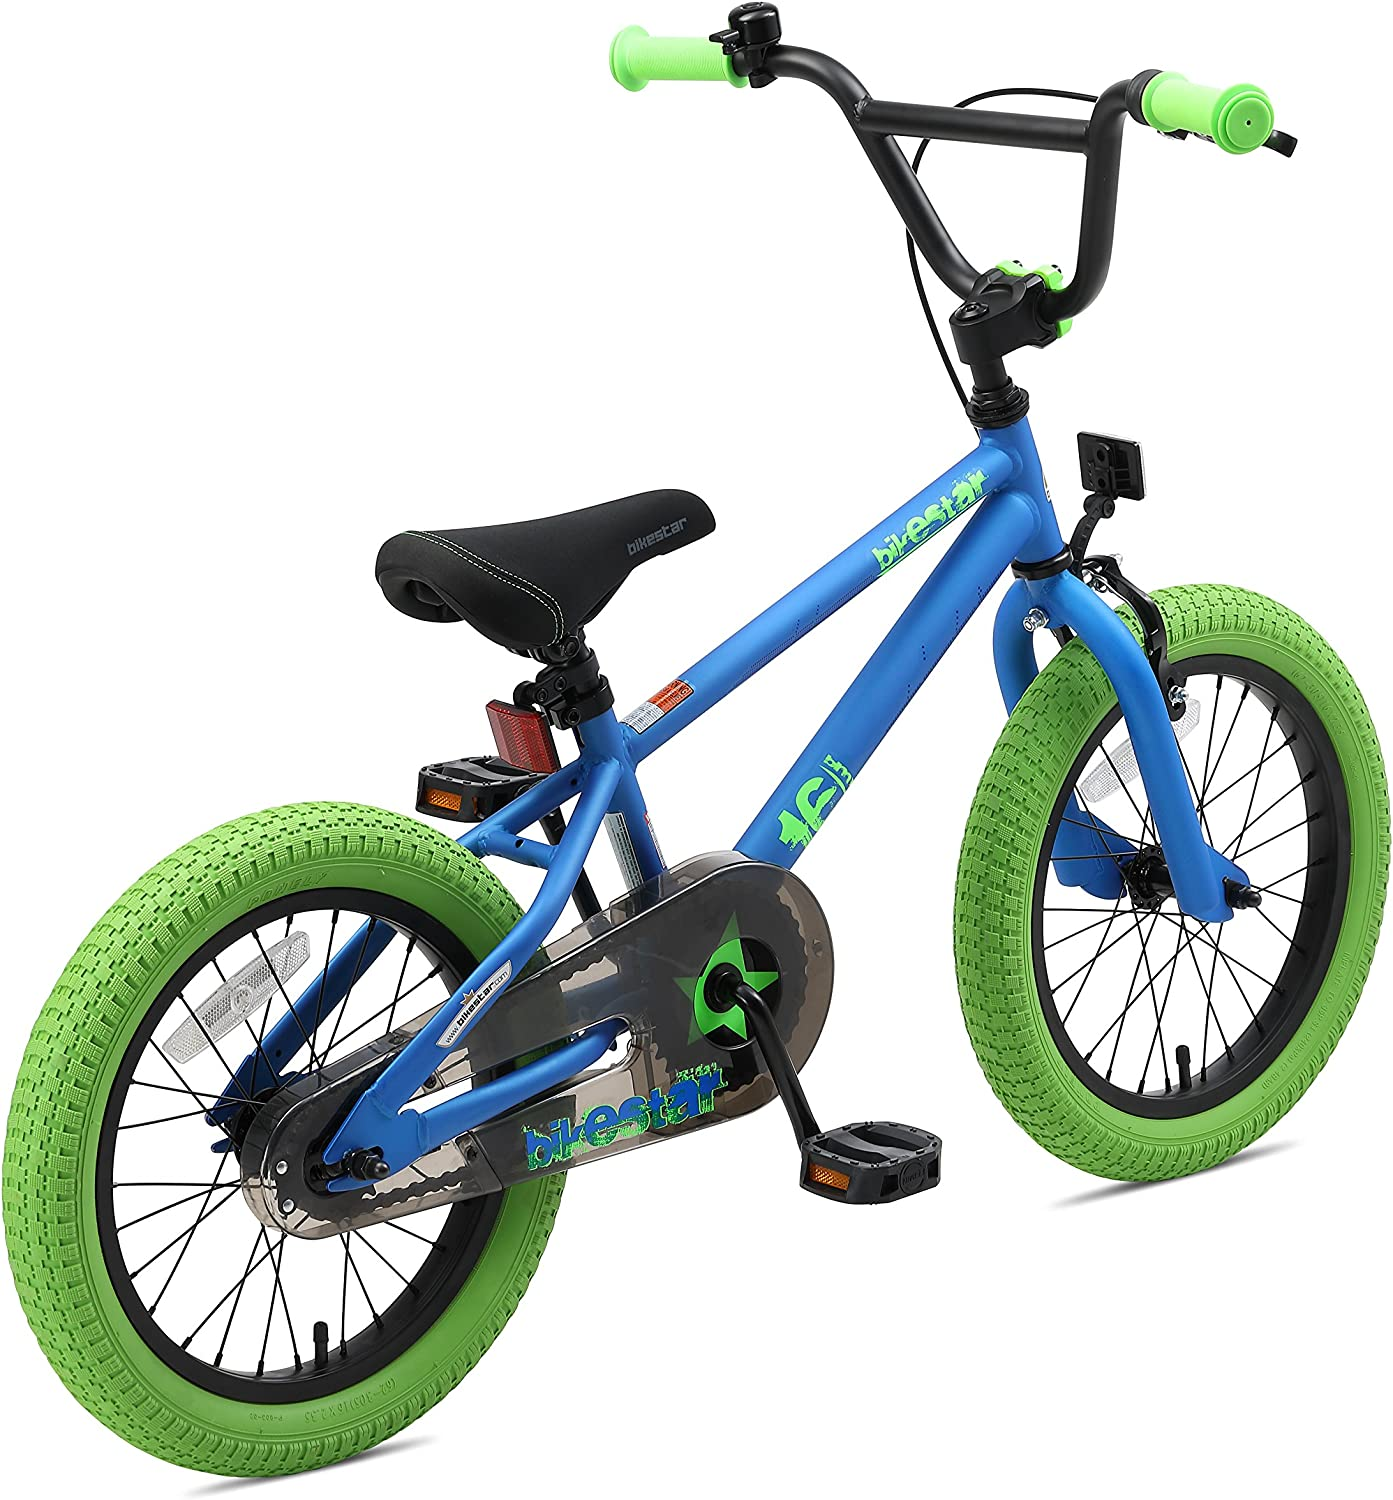 BIKESTAR Safety Sport Kids Bike Bicycle for Kids Age 4-5 Year Old Children 16 Inch BMX Edition for Boys and Girls